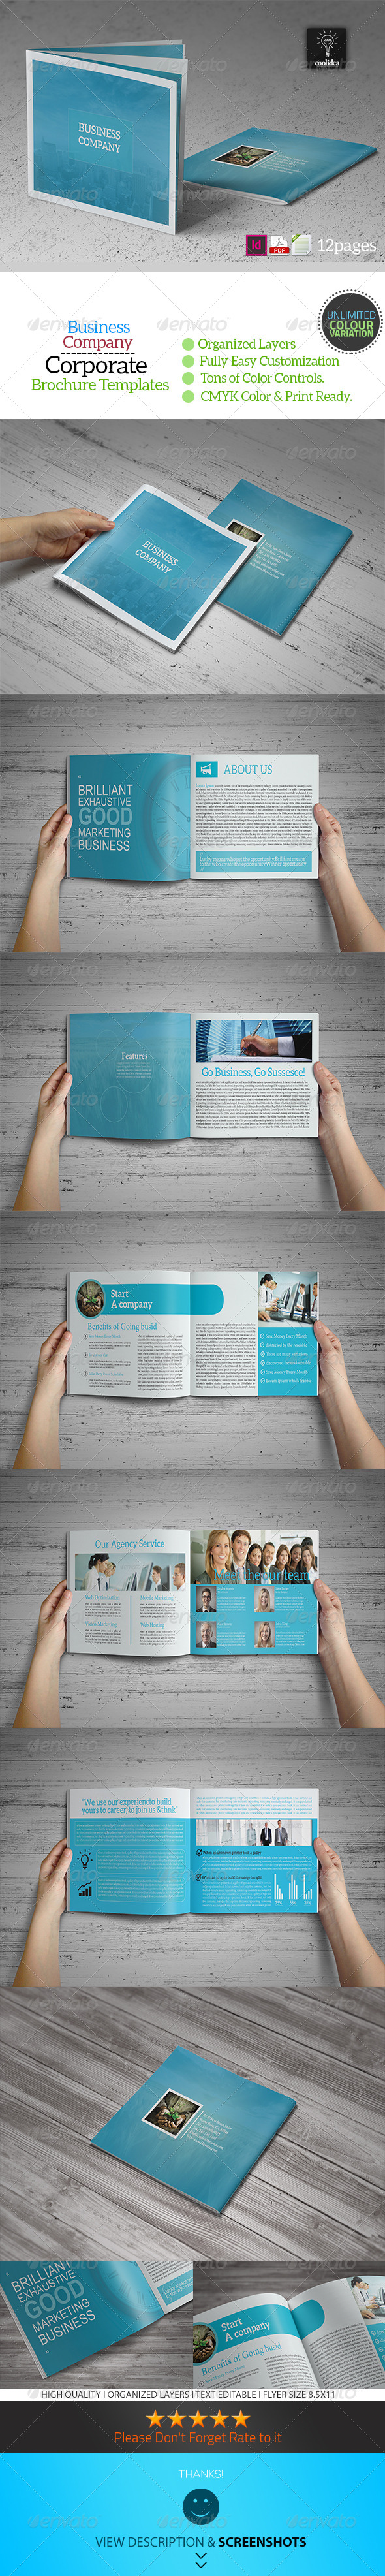 GraphicRiver Business Plan 12 Pages Business Brochure 6730633